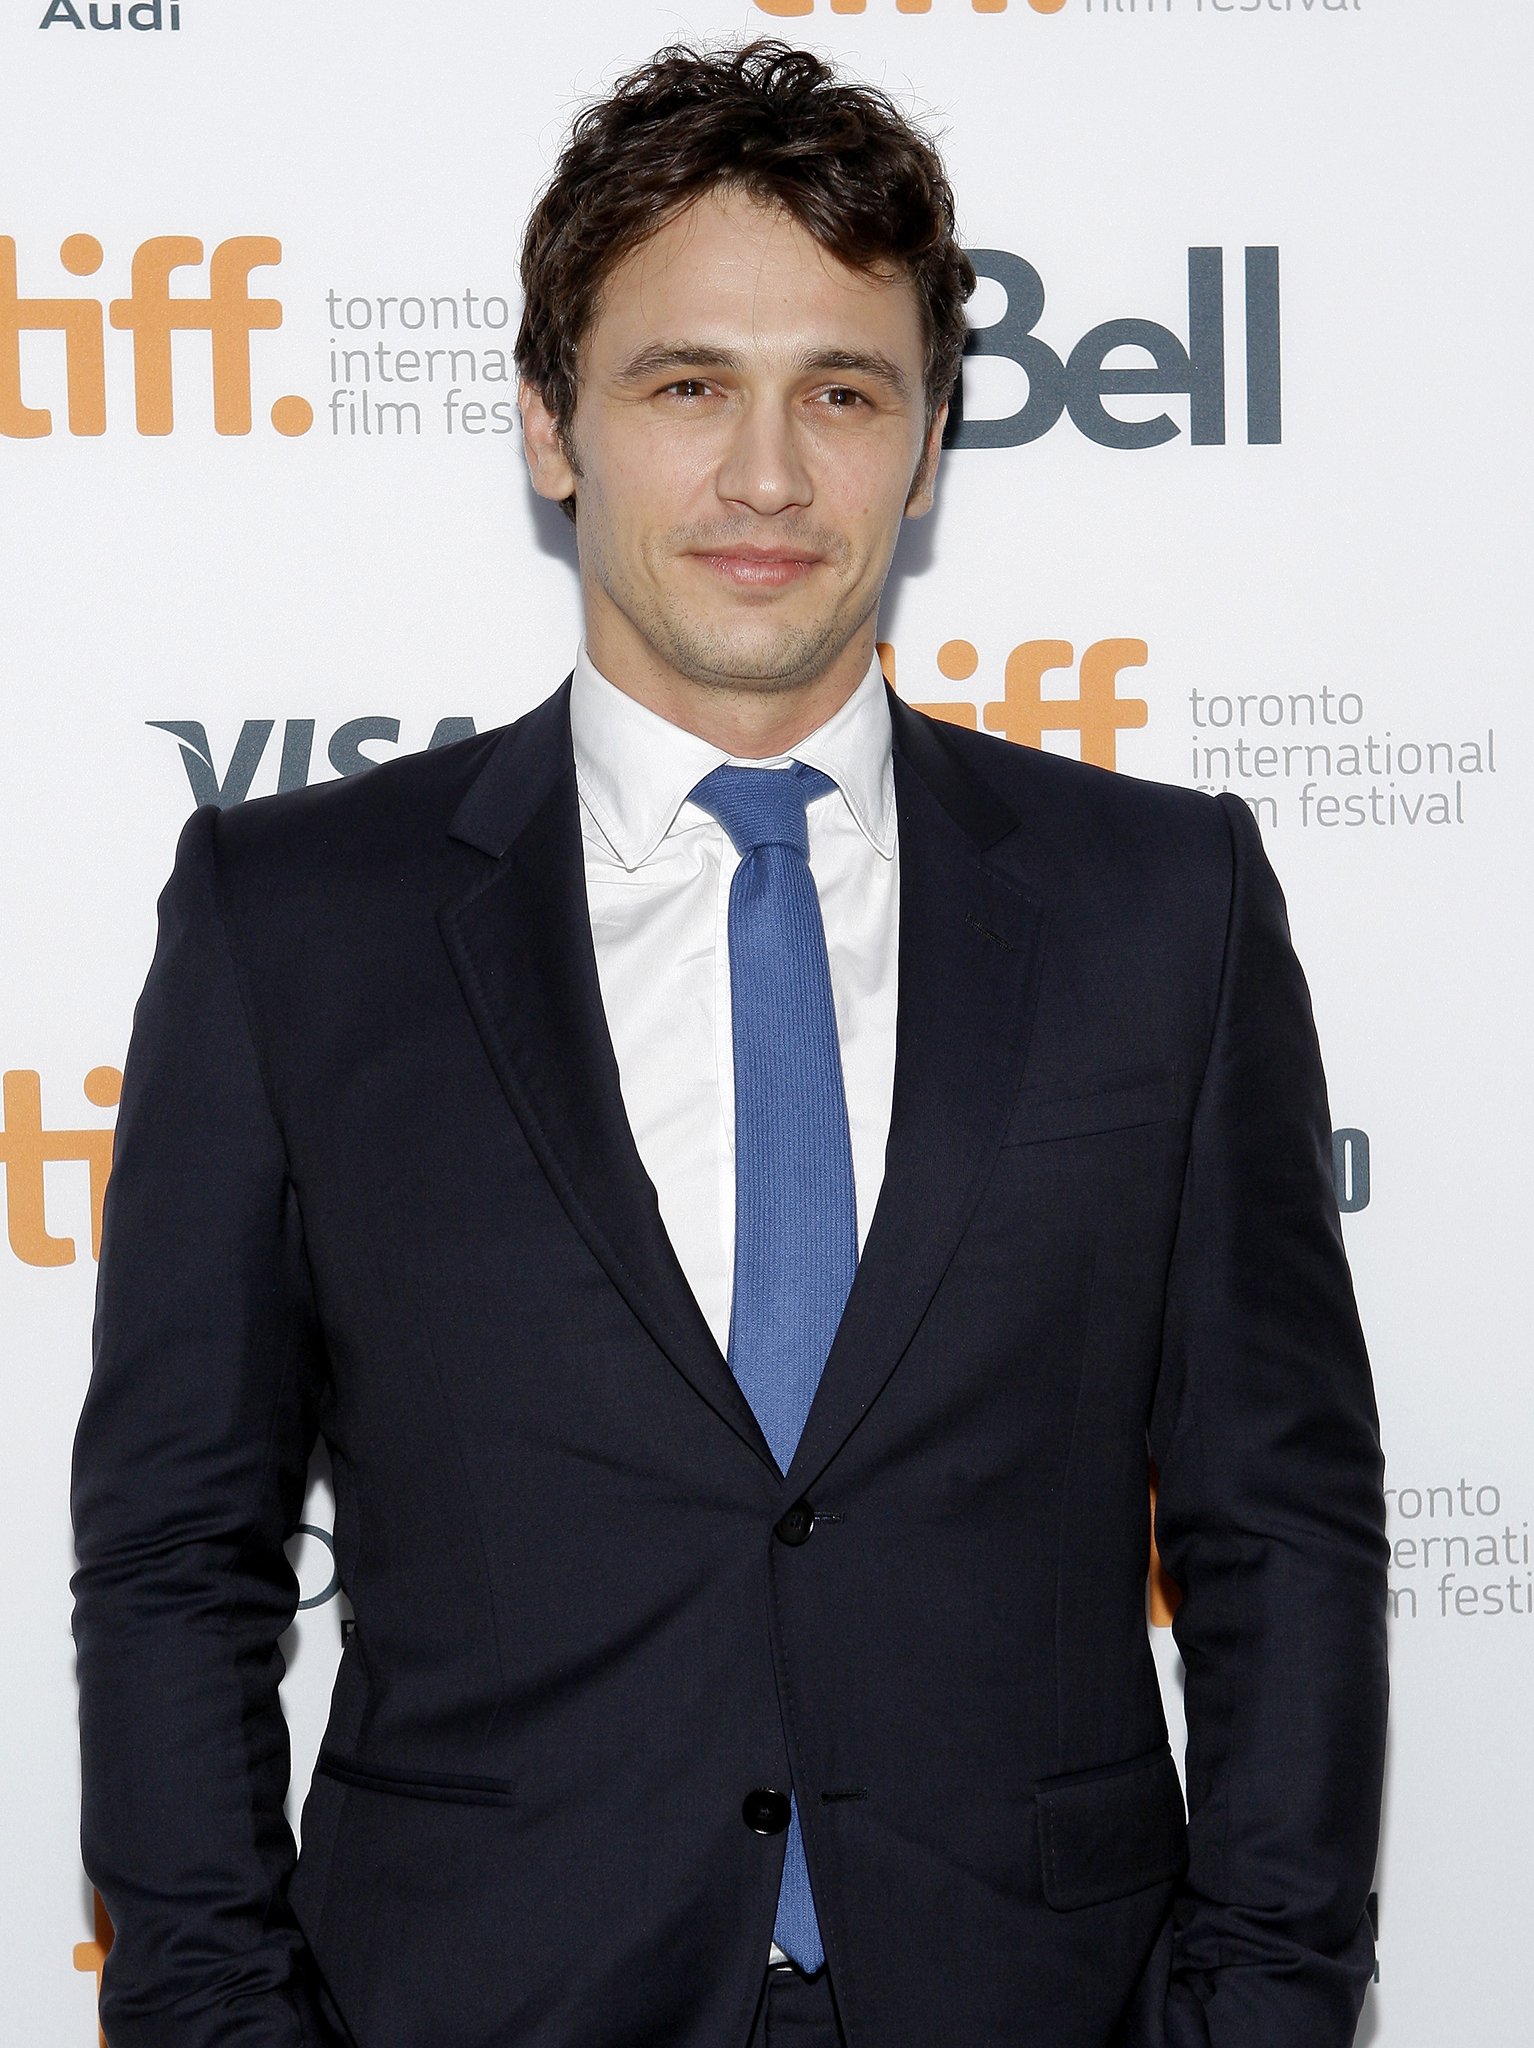 James Franco in Toronto (Getty Images)